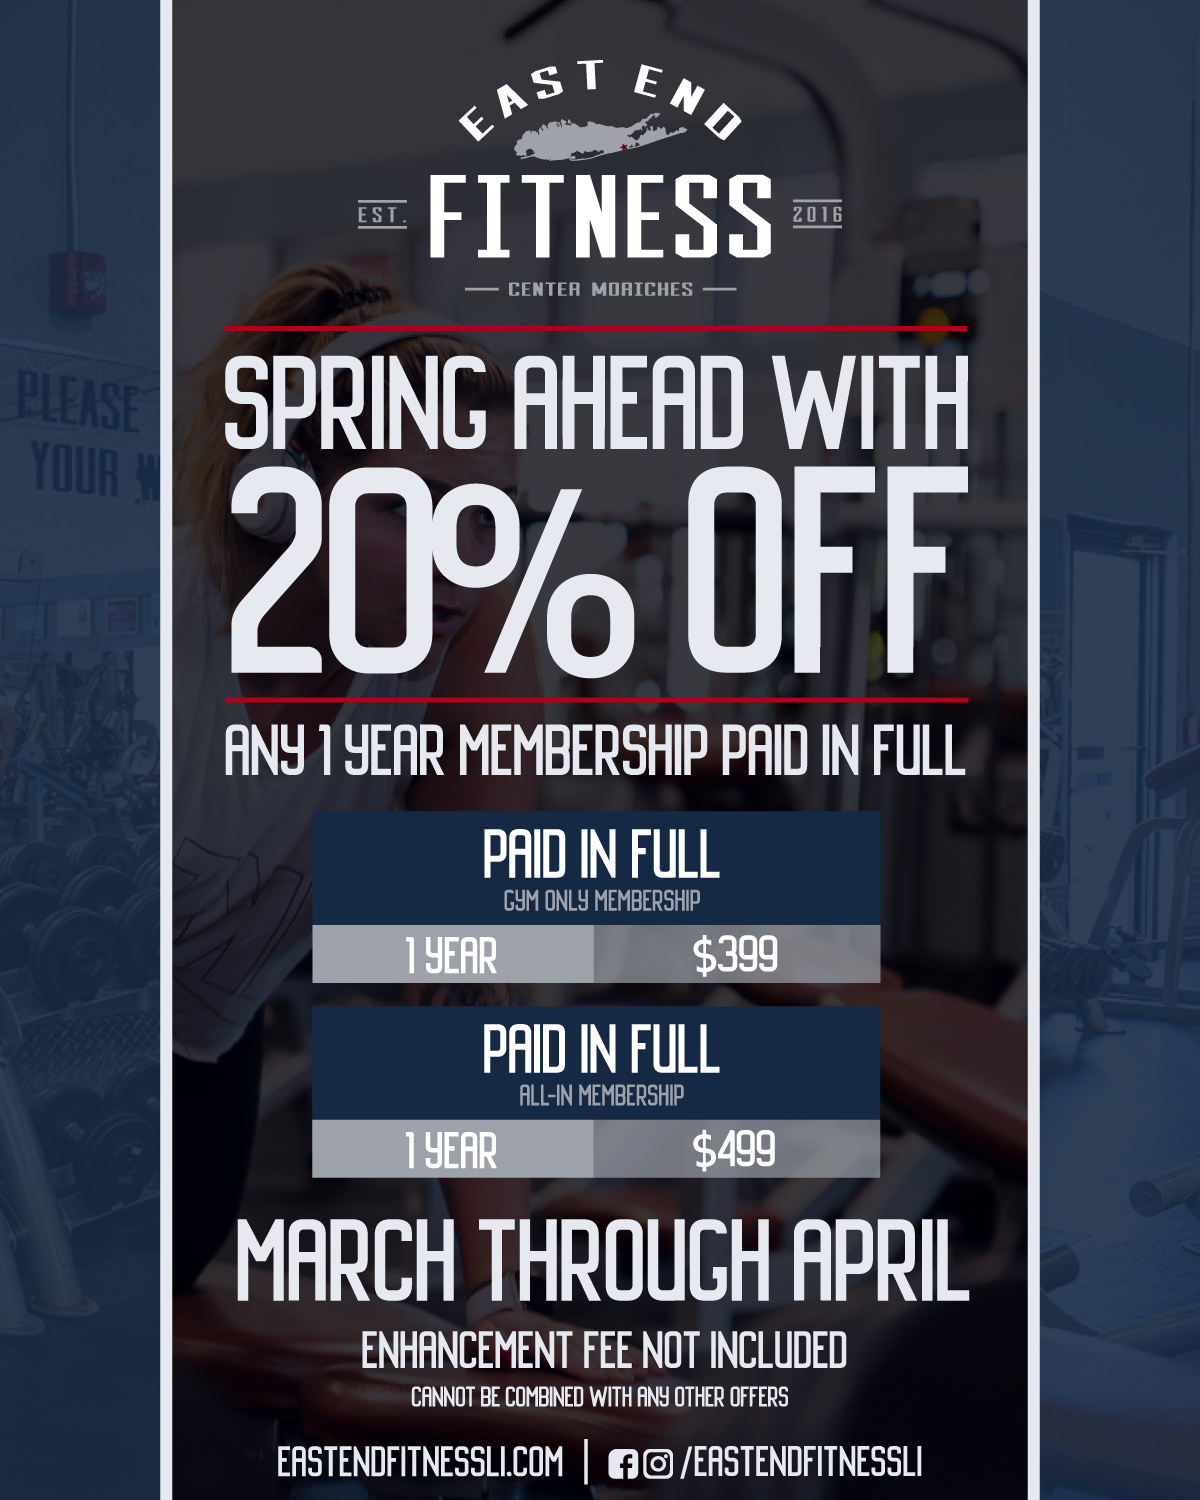 Flyer for Spring Ahead with 20% off any 1 year membership paid in full, March through April, Enhancement Fee not included, Cannot be combined with any other offers